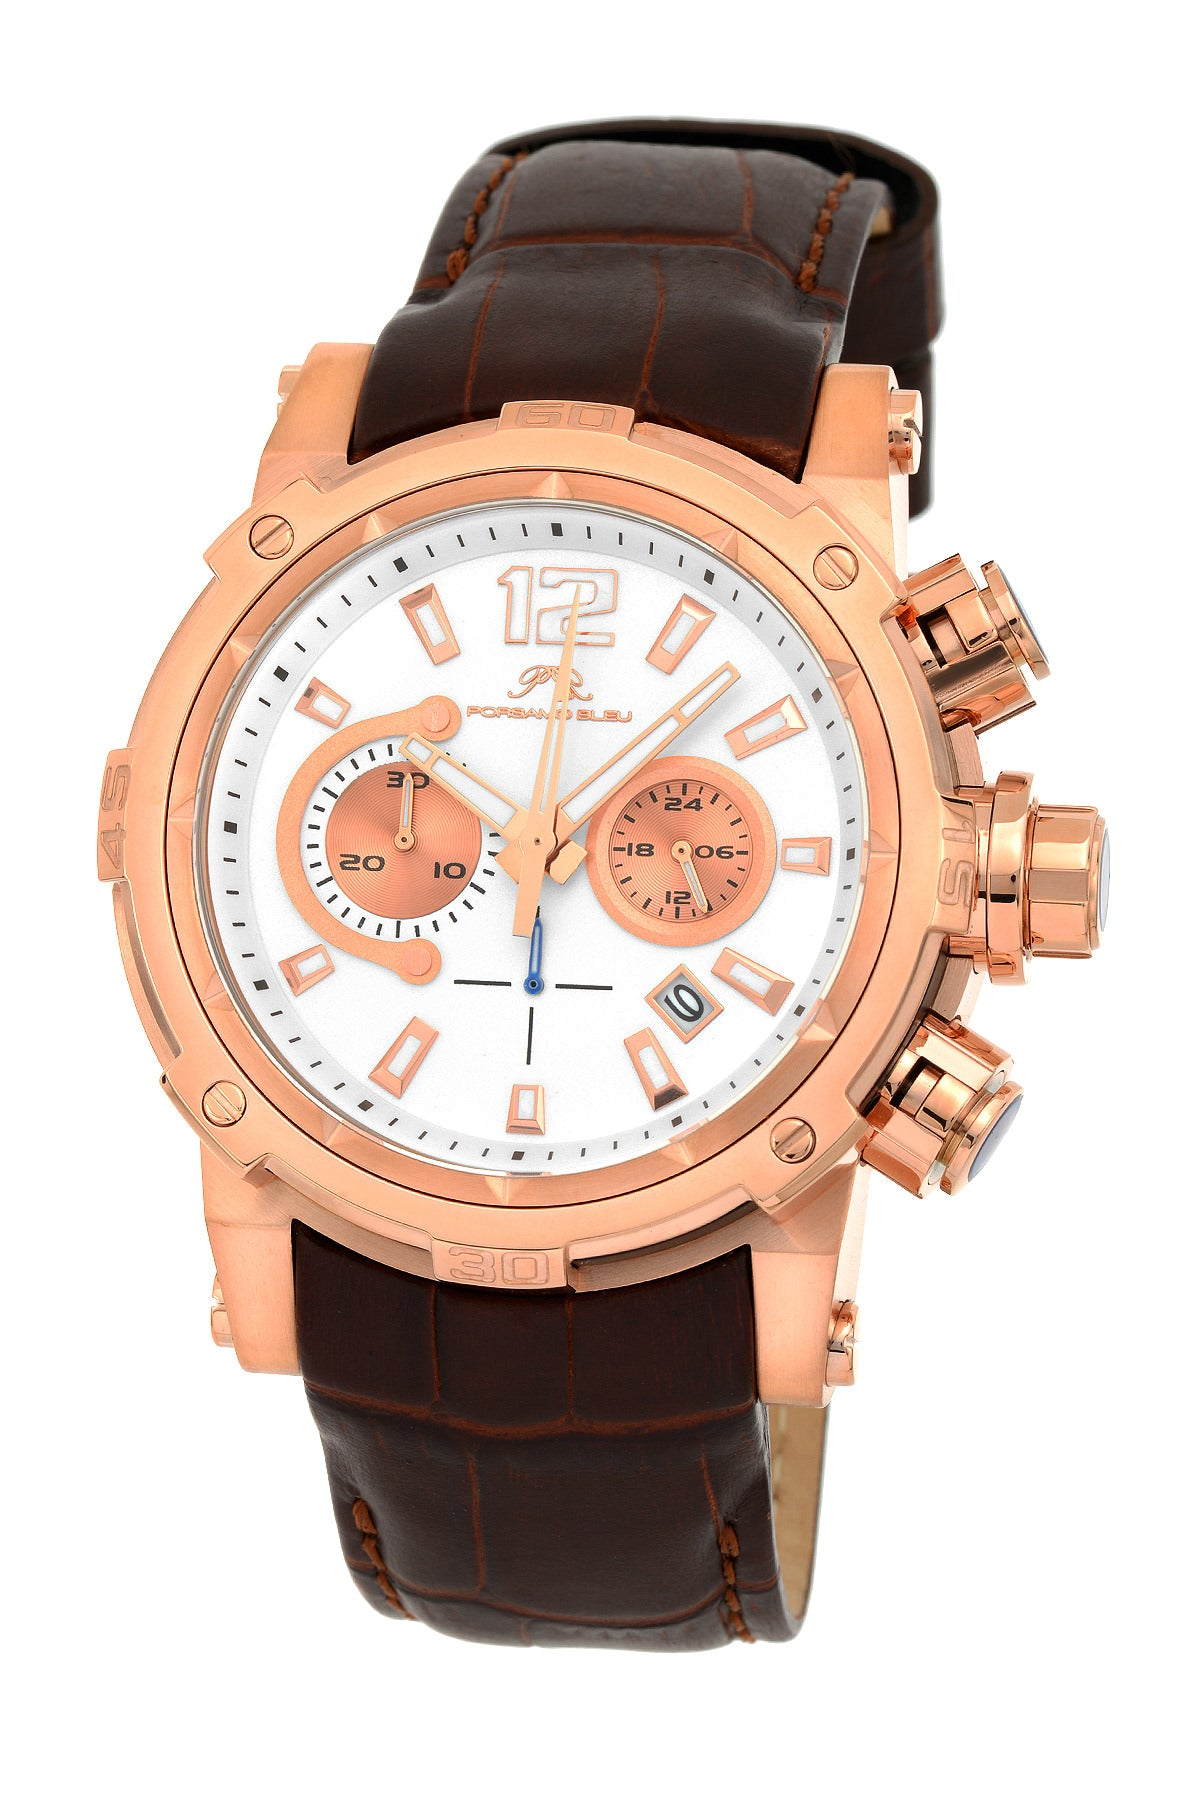 Porsamo Bleu Antonio luxury chronograph men's watch, genuine leather band, rose, brown 611CANL